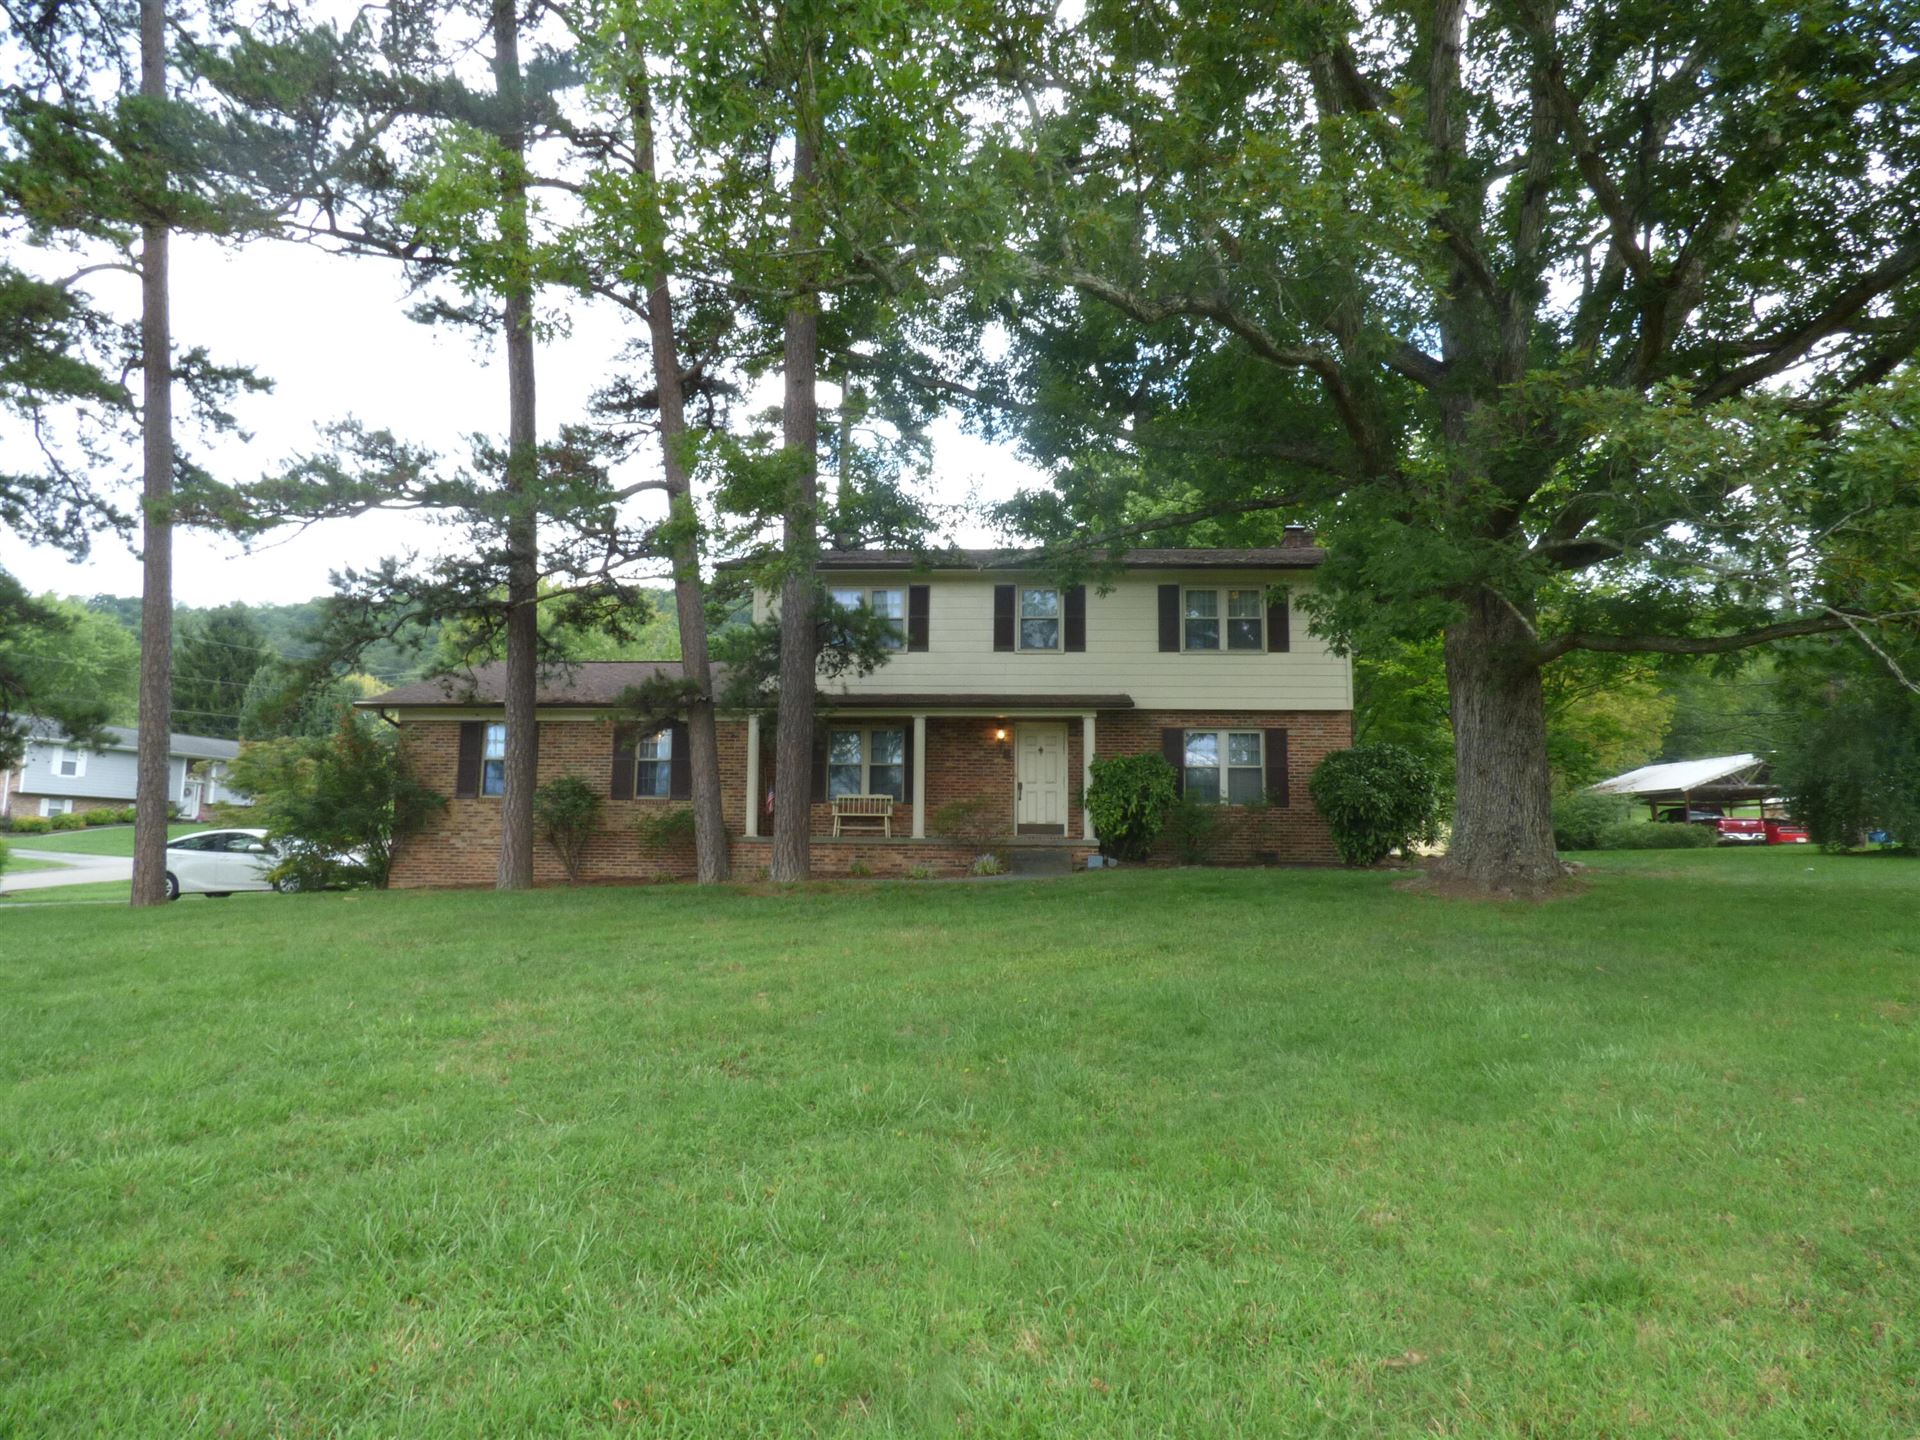 Photo of 6719 Tazewell Pike, Knoxville, TN 37918 (MLS # 1168578)